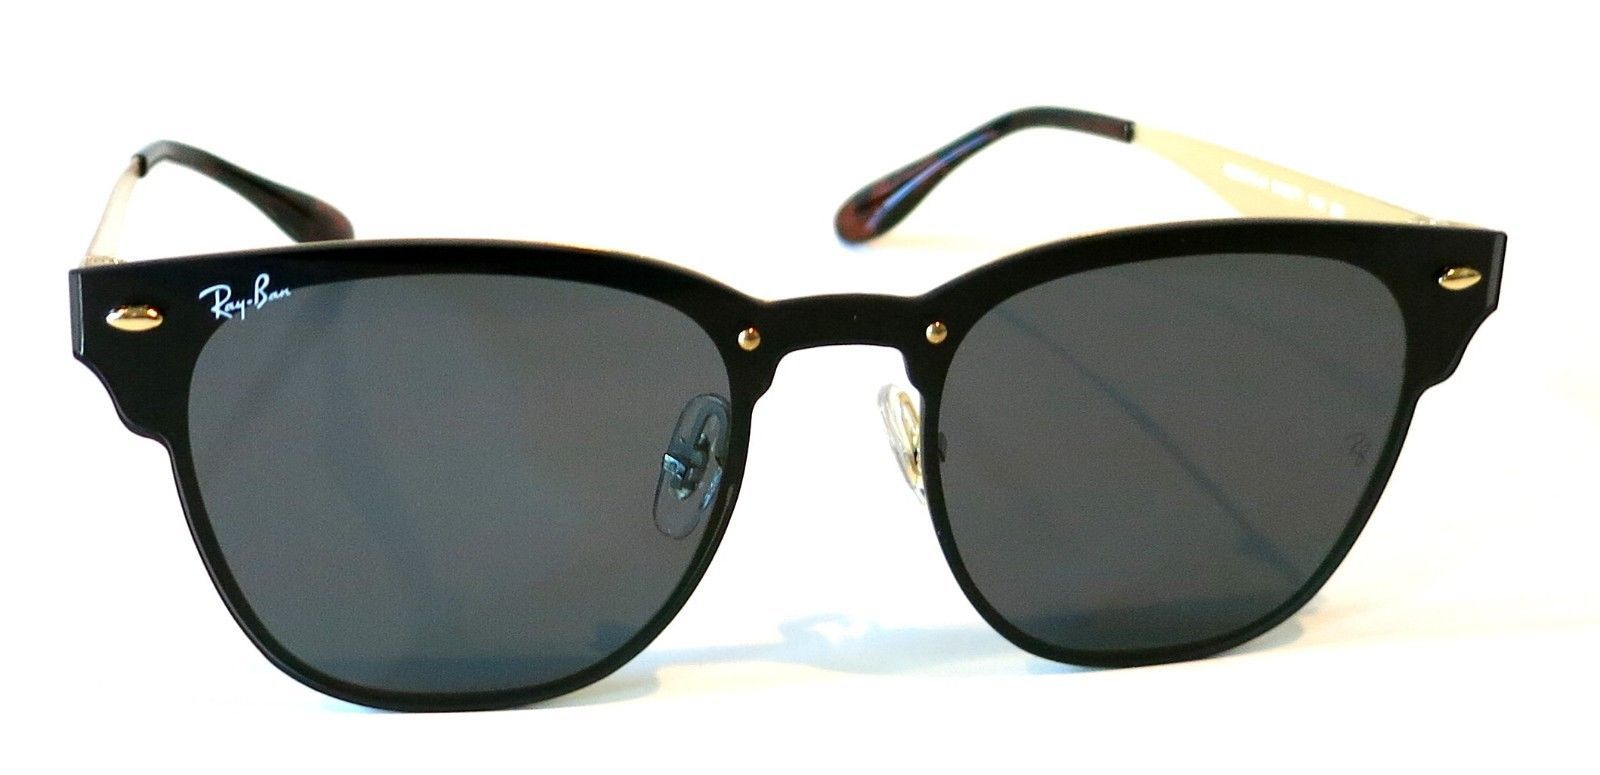 637467f20b S l1600. S l1600. Rayban Blaze Clubmaster Sunglasses RB3576N 043 71 Black  Gold Green Club 3576